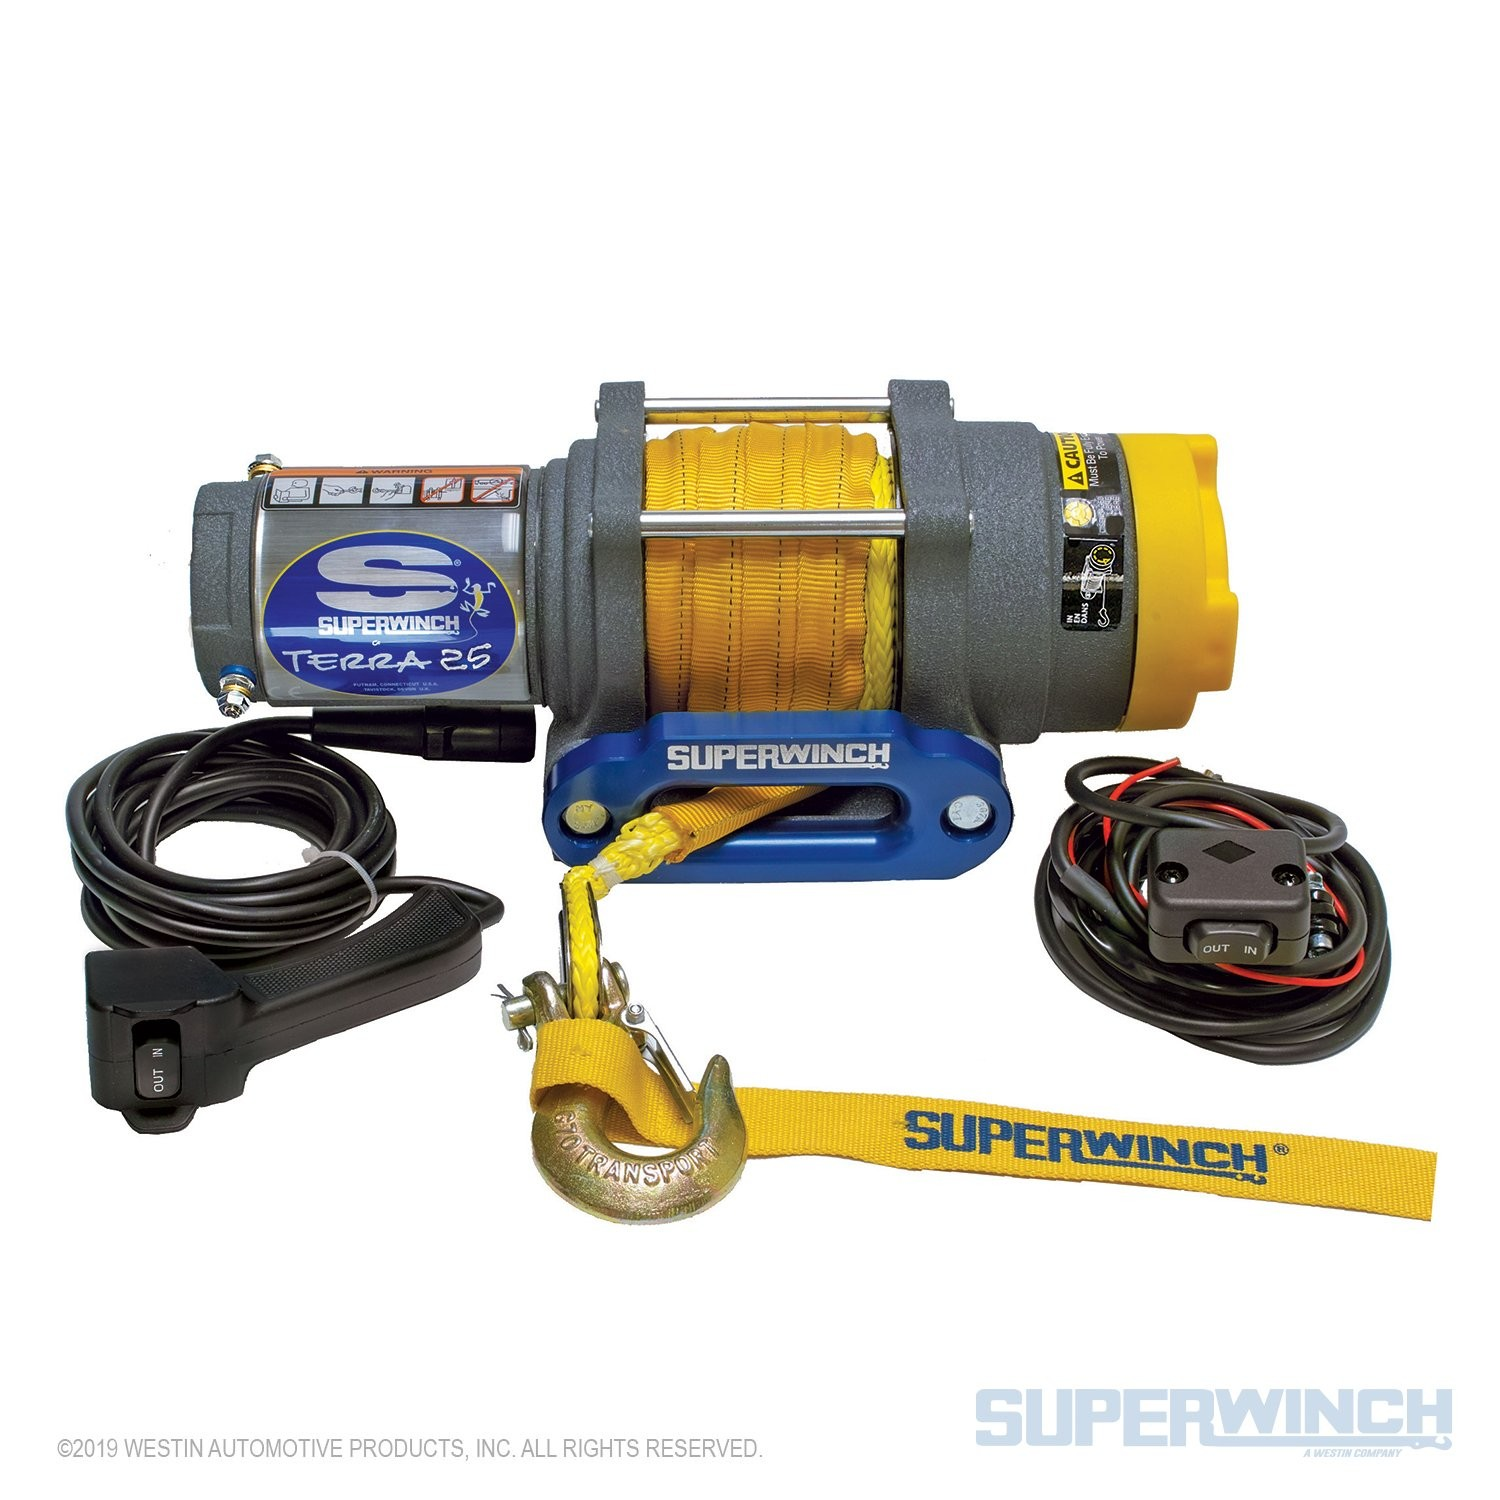 Atv Superwinch solenoid Diagram Superwinch Terra 25sr 12v atv Utv Winch Synthetic Rope Of Atv Superwinch solenoid Diagram